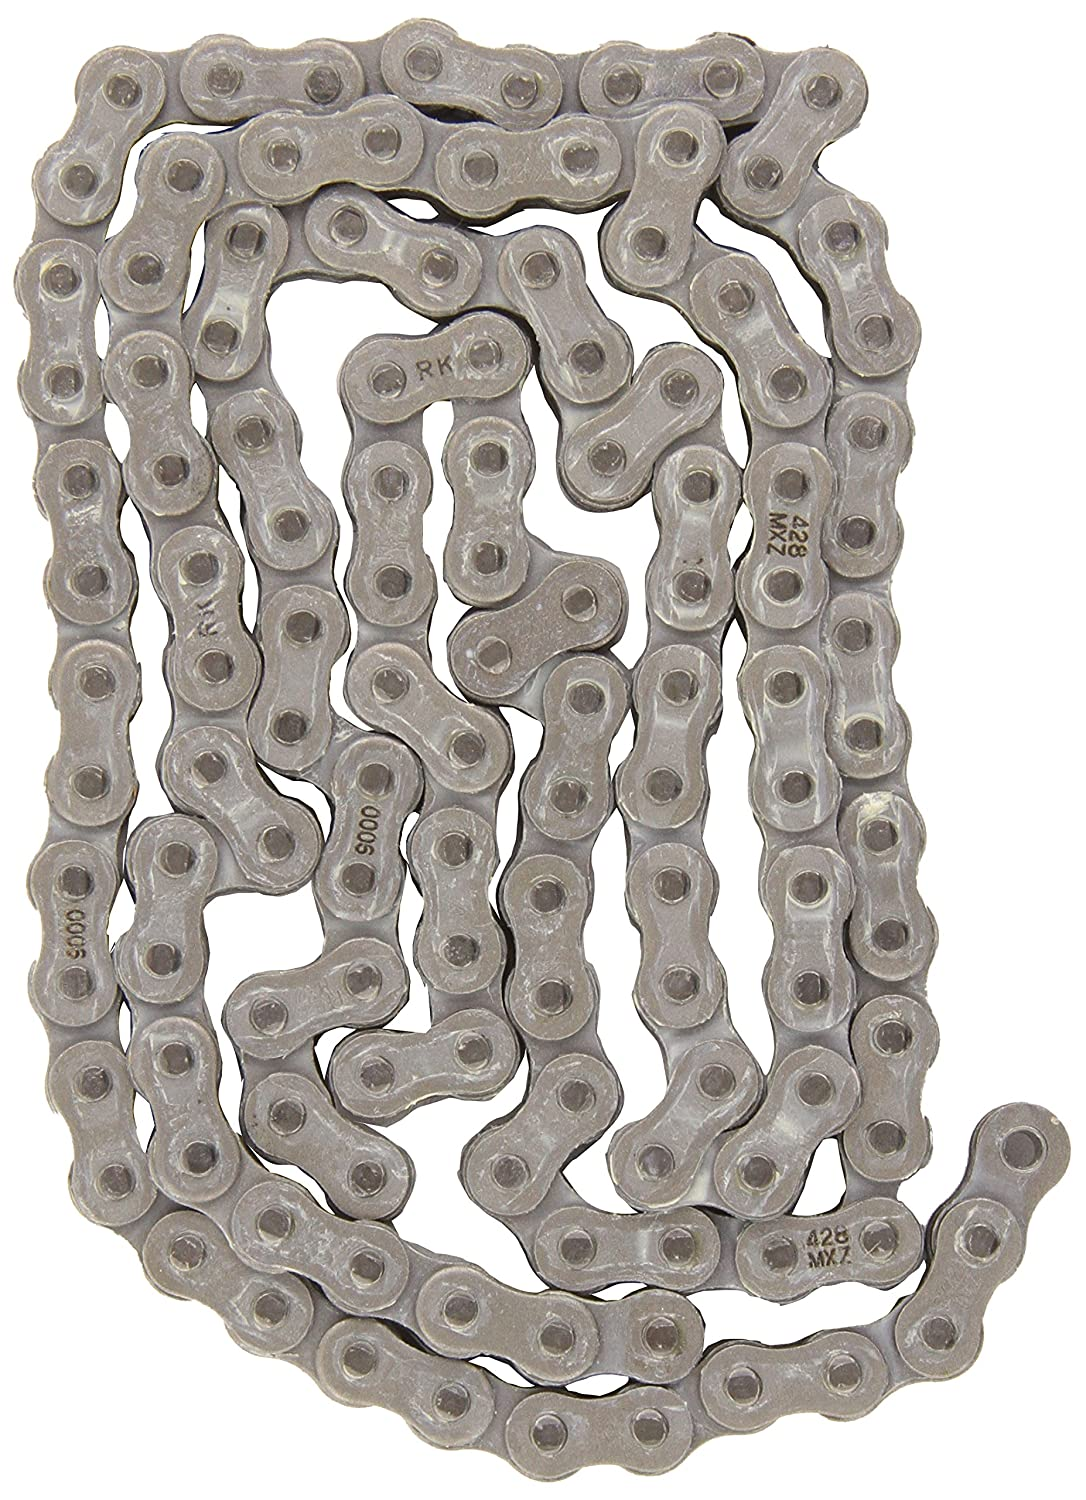 RK Racing Chain 428MXZ-124 124-Links MX Chain with Connecting Link